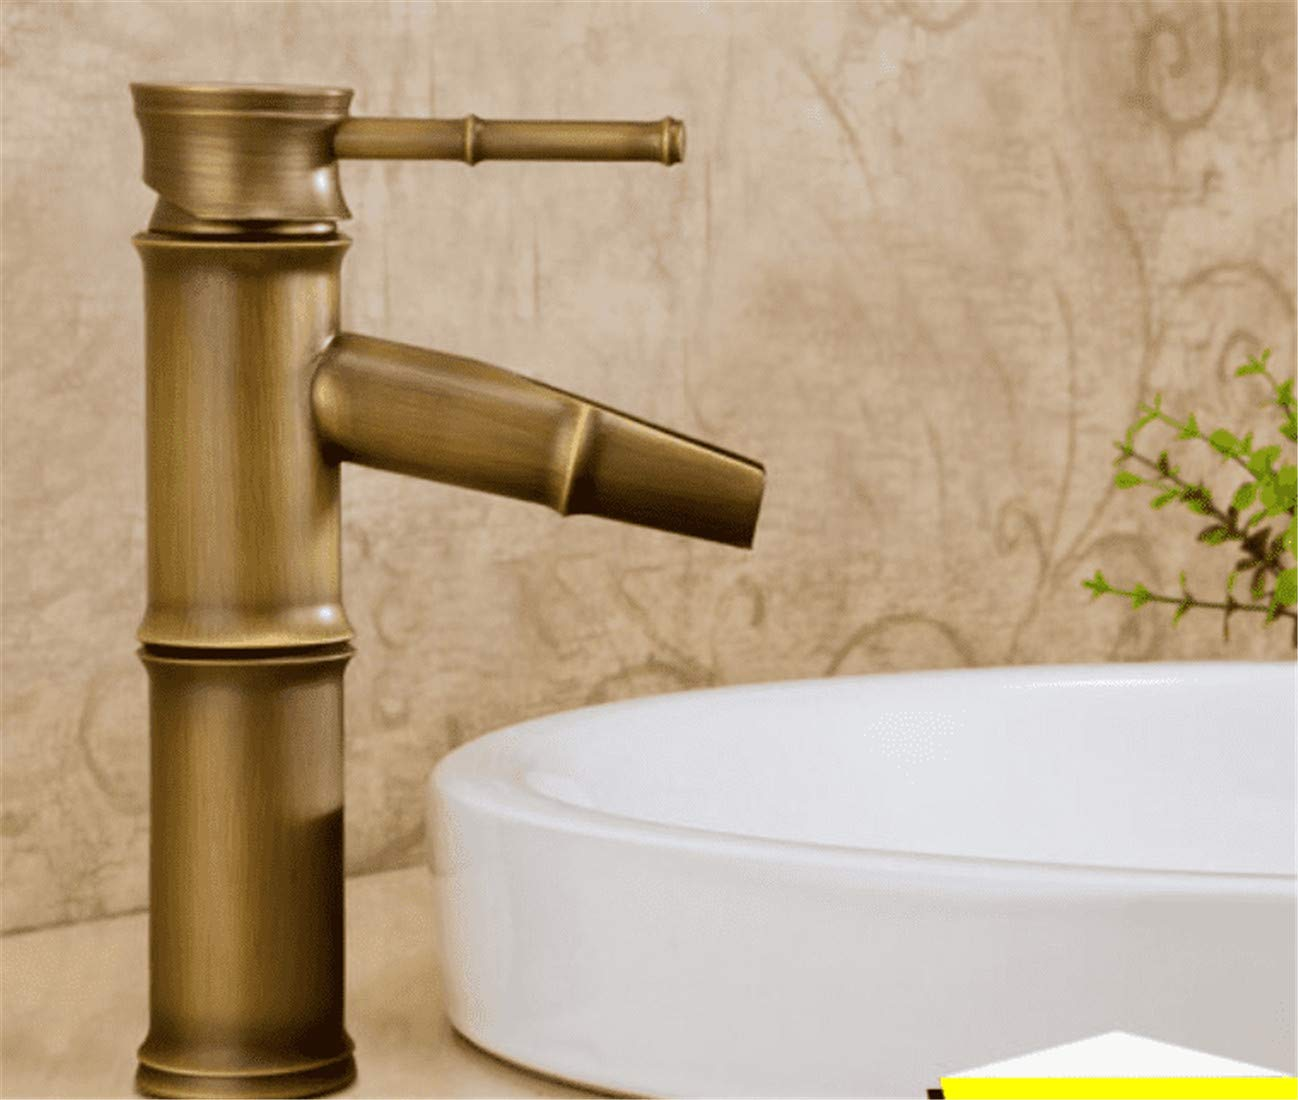 D Mucert Tap,All Copper,European Style Archaize Tap,Hot and Cold Water,Bathroom Retro Basin Faucet,K